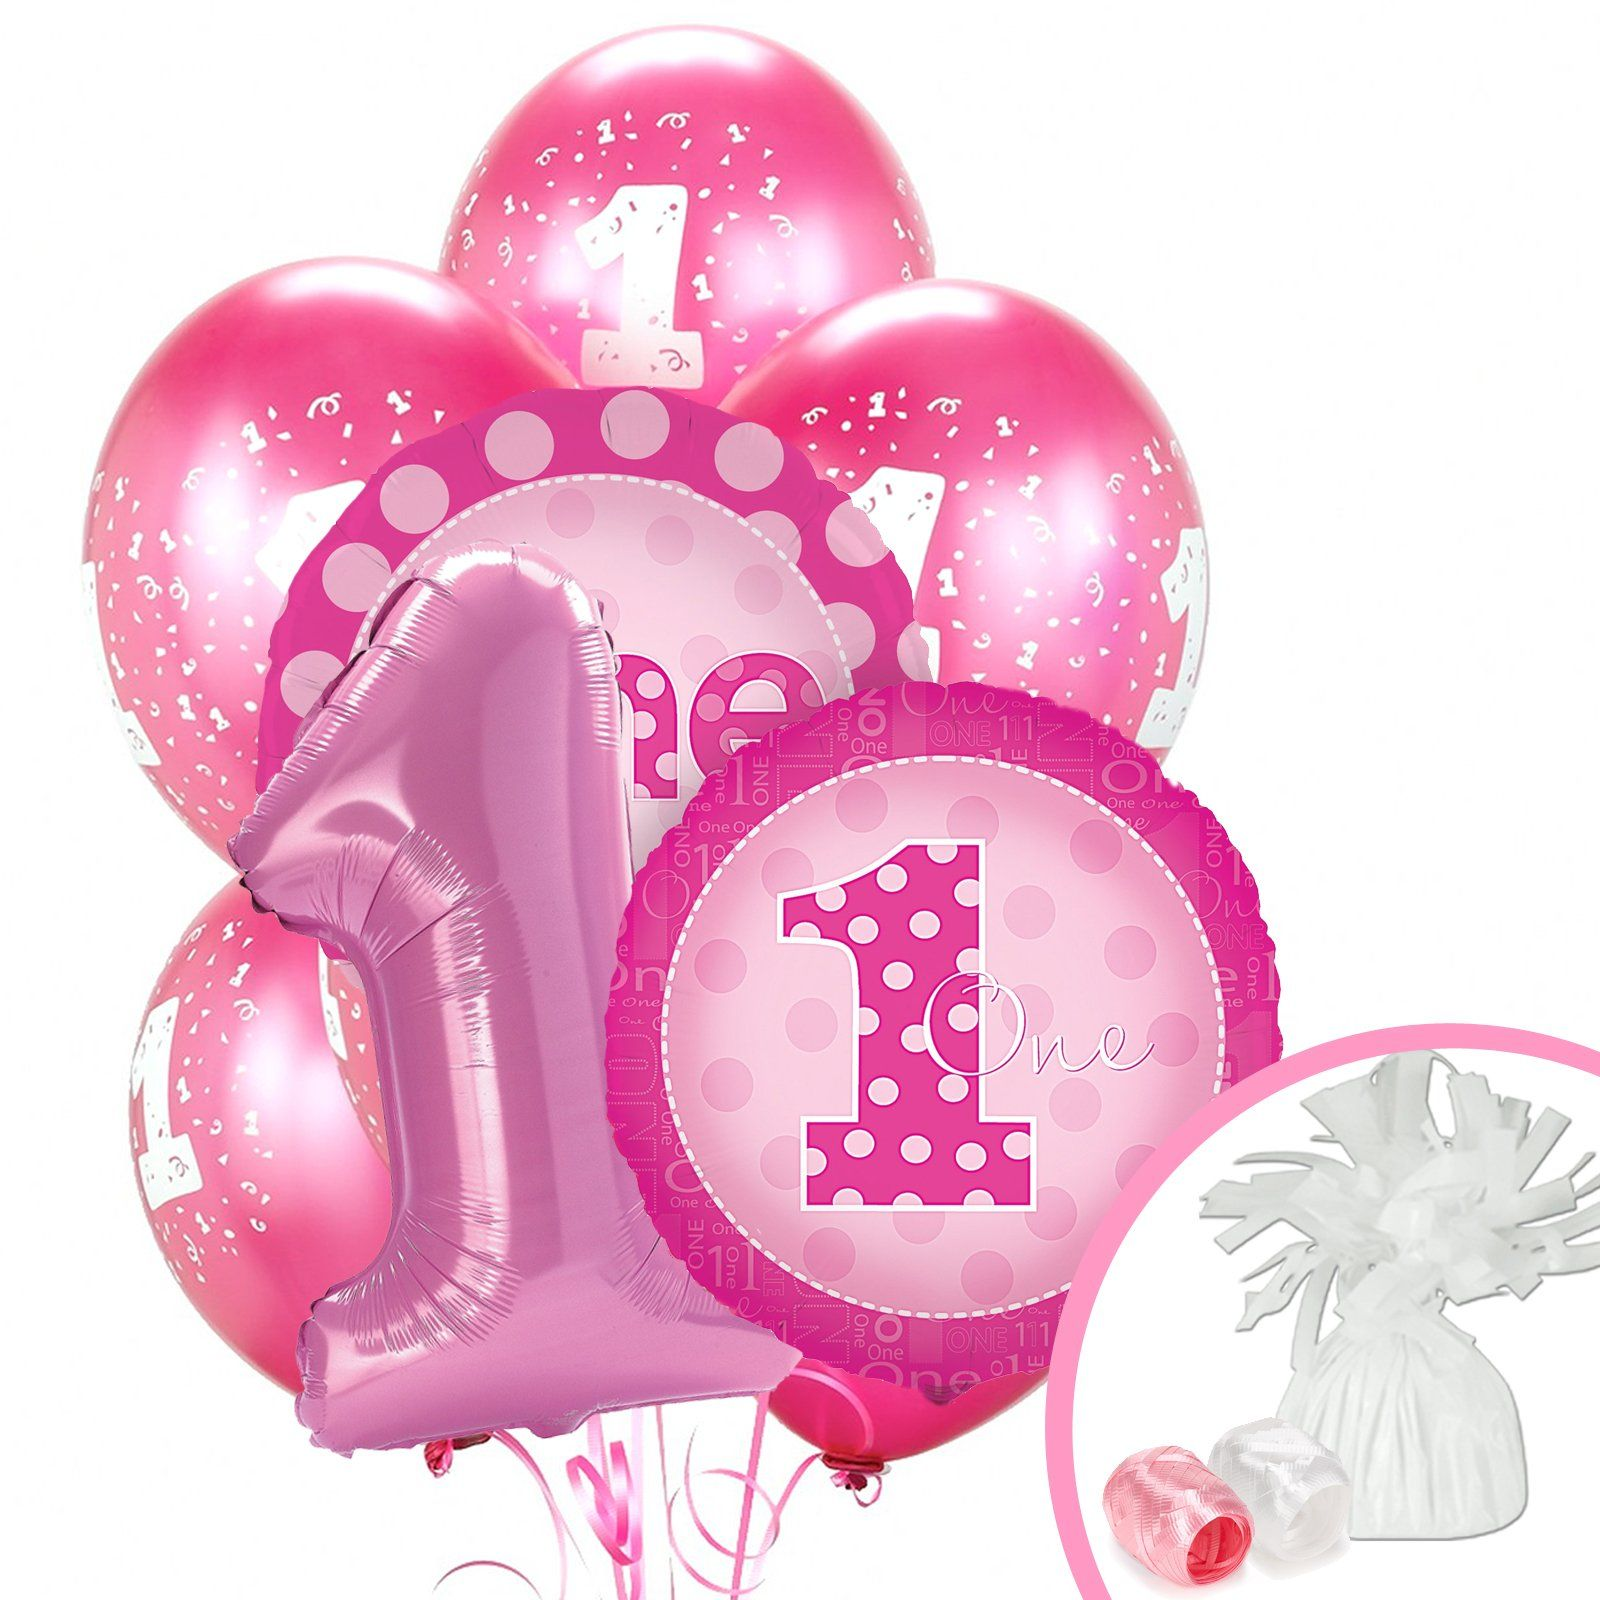 Everything One 1st Birthday Balloon Bouquet, 96406